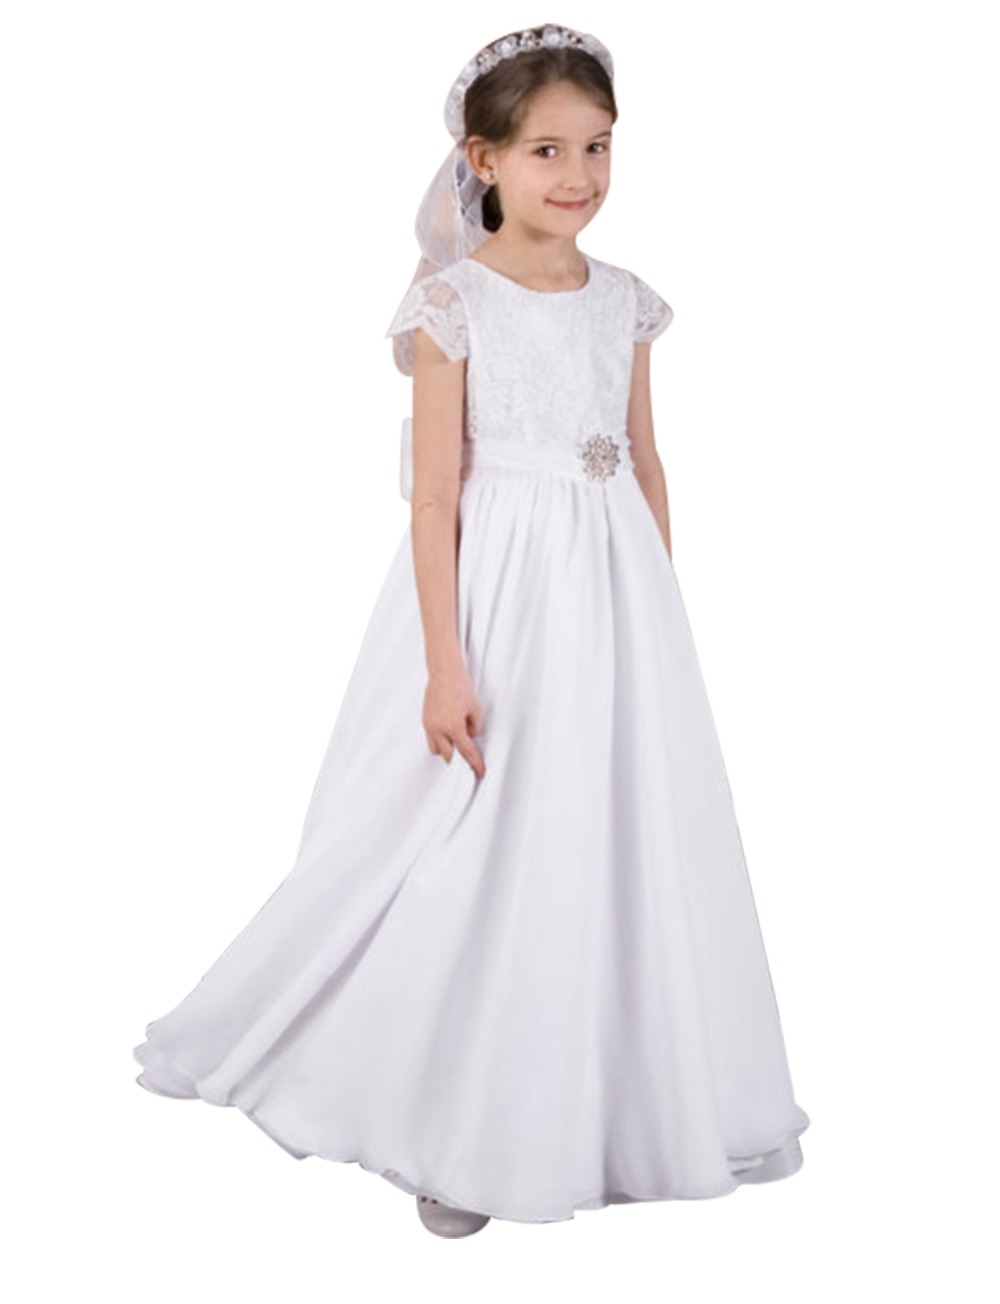 New Short Sleeve Flower Girl Dresses for Weddings Party Chiffon Holy First Communion Dresses Bow Princess A-Line Pageant Gowns